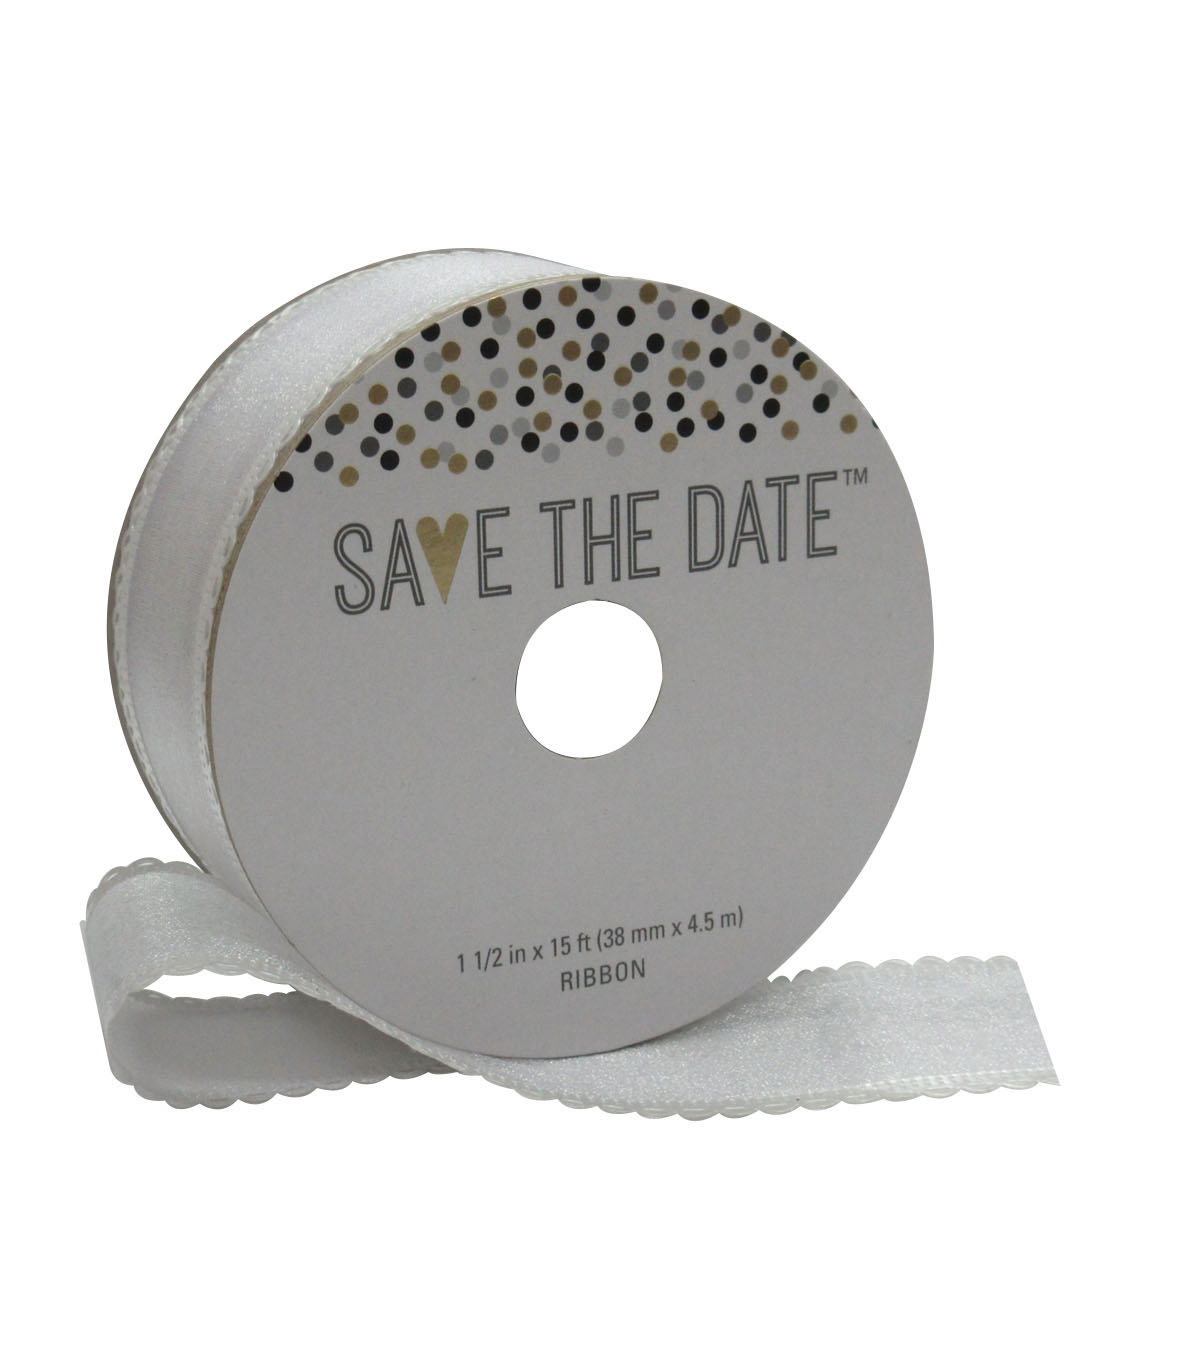 Save the Date 1.5'' X 15' Ribbon-Looped Iridescent